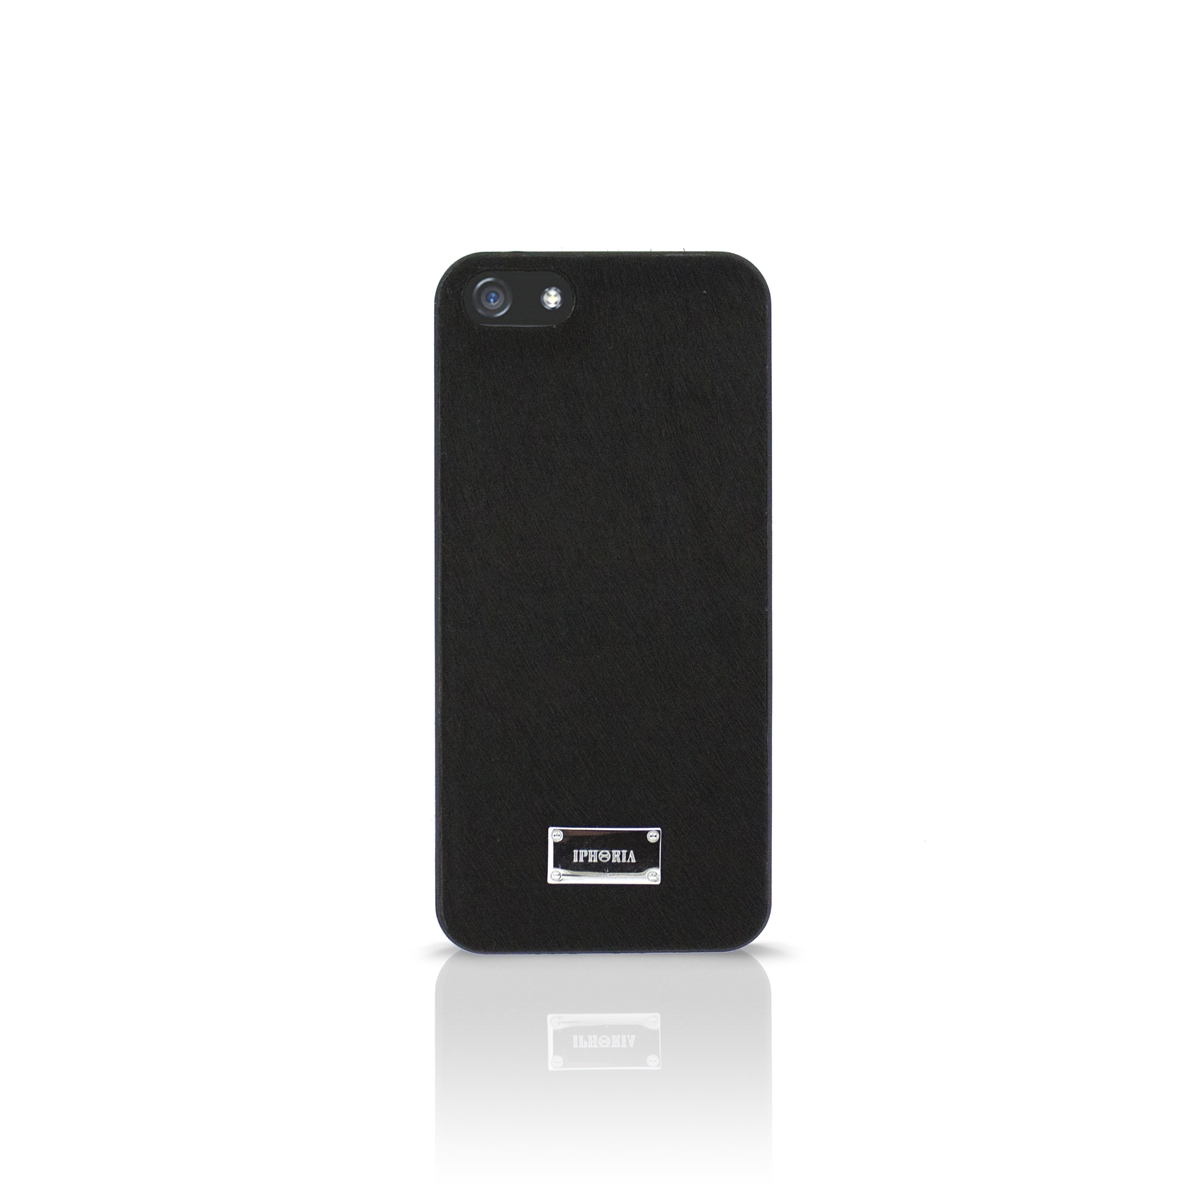 Hardcase Luxury Black für Apple iPhone 5/ 5S/ SE